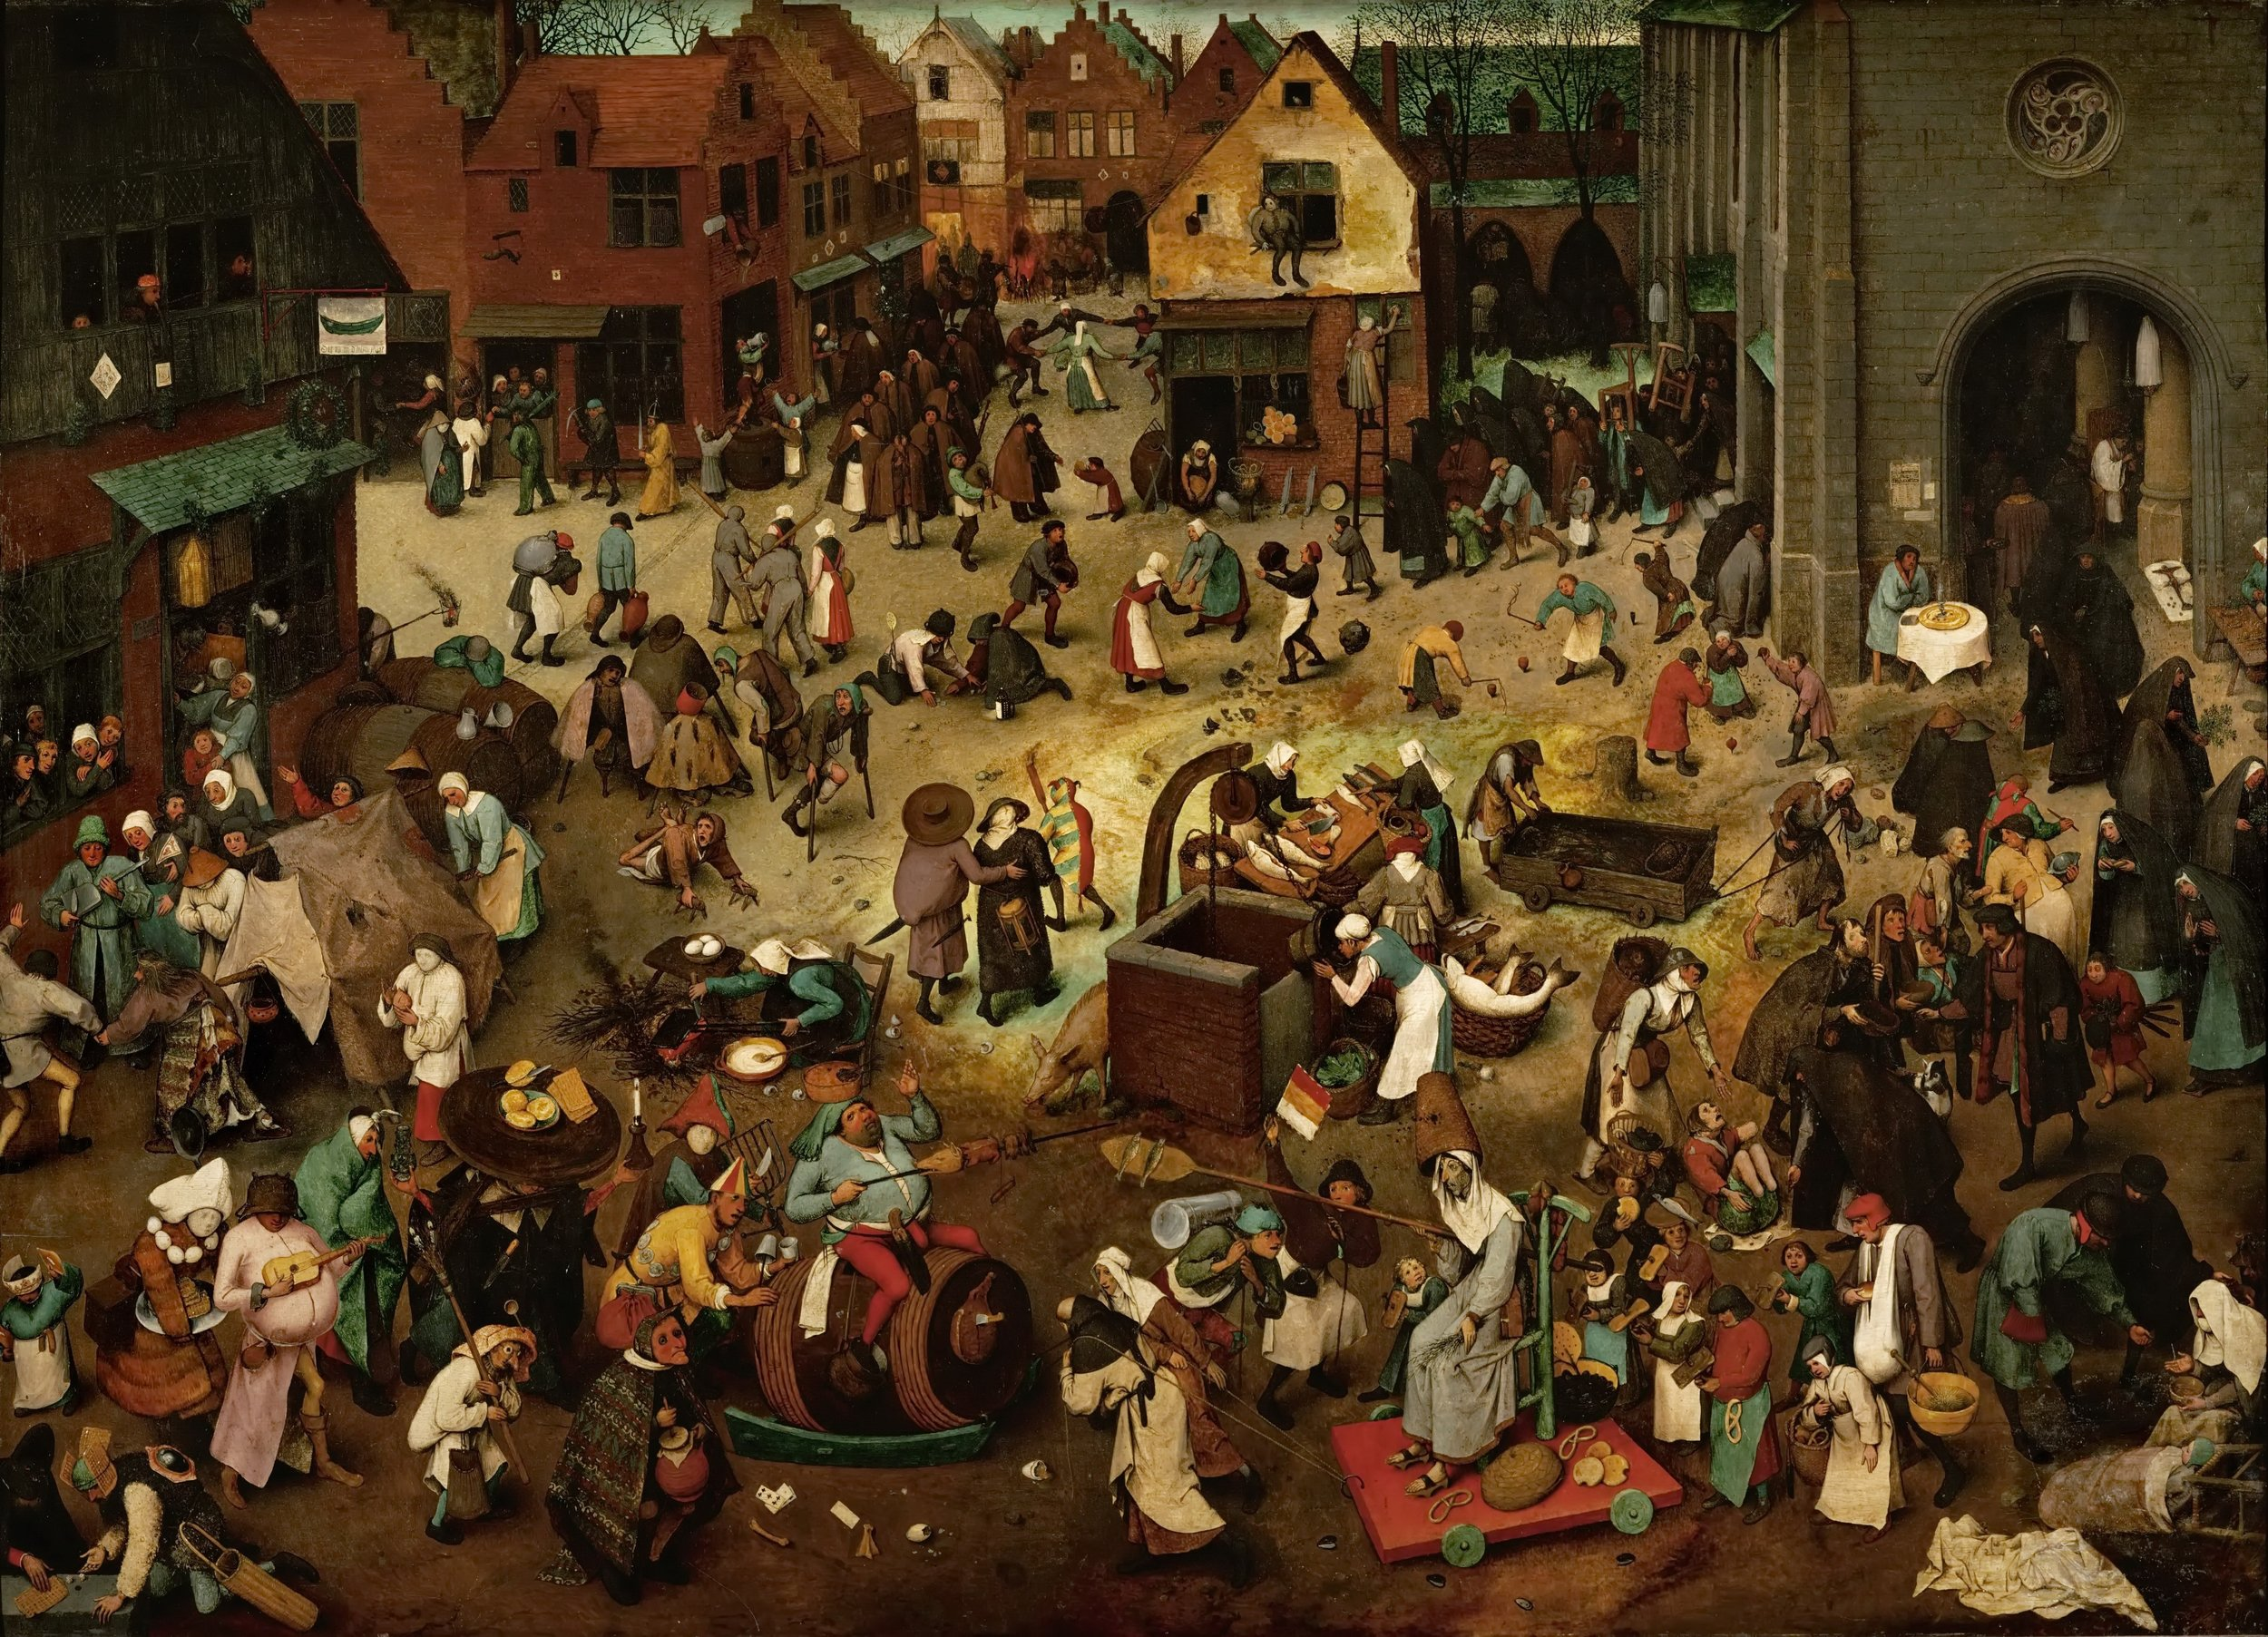 Bruegel, The Fight Between Carnival and Lent (1559)